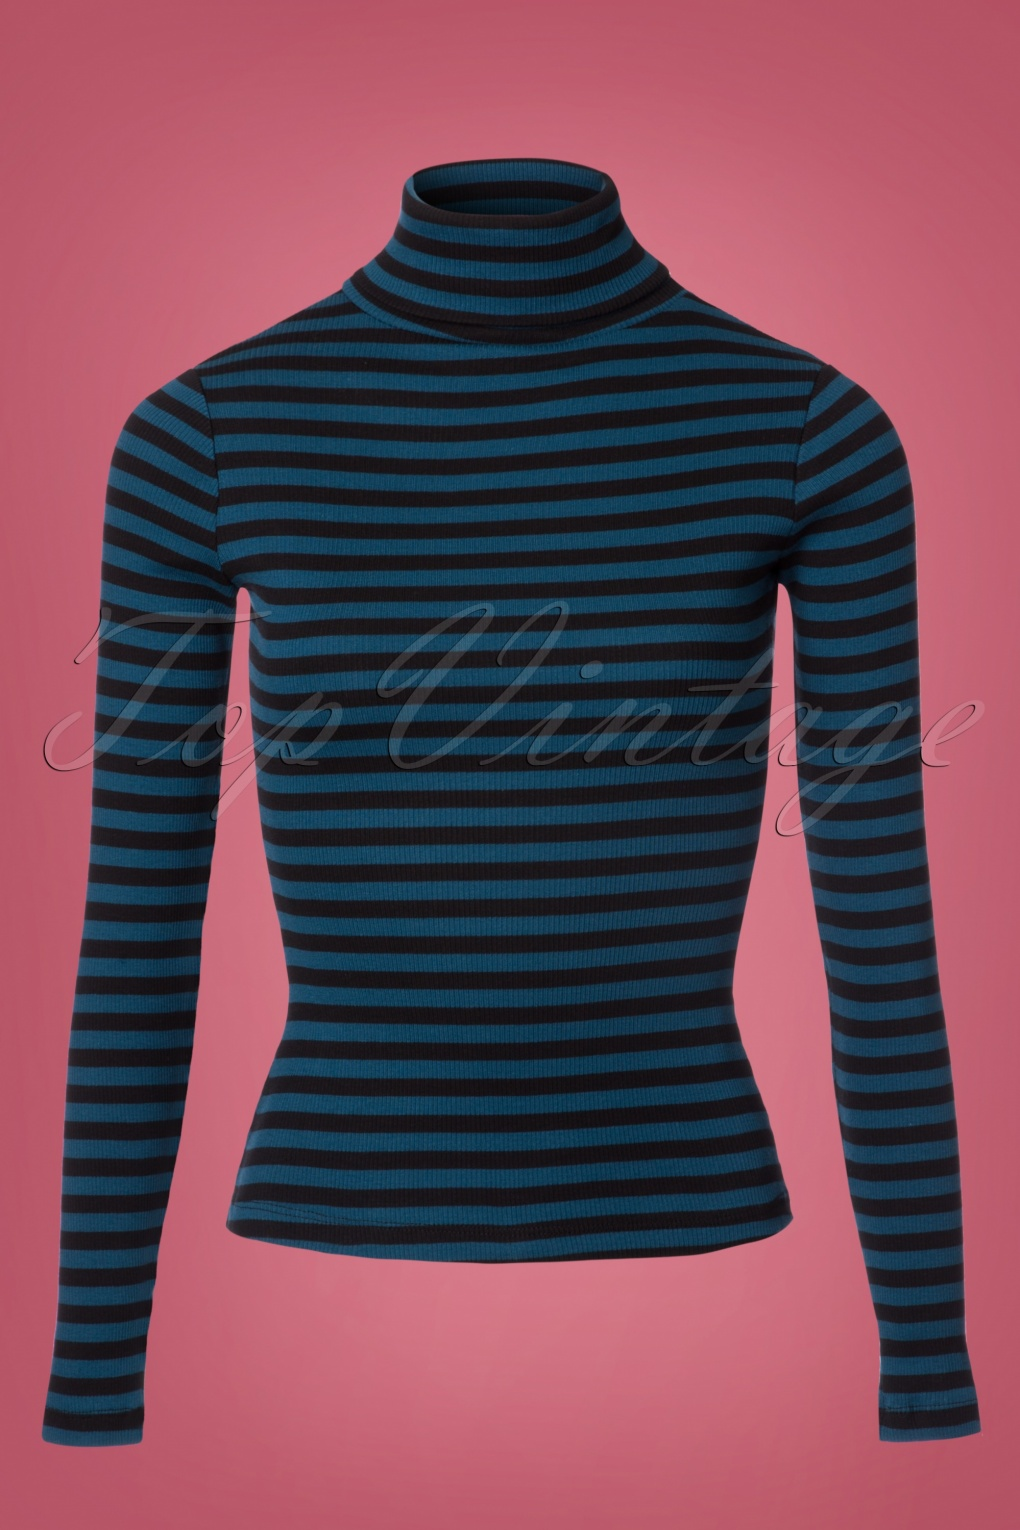 1960s -1970s Blouses, Shirts and Tops 70s Rollneck Rib Stripe Top in Storm Blue £45.07 AT vintagedancer.com